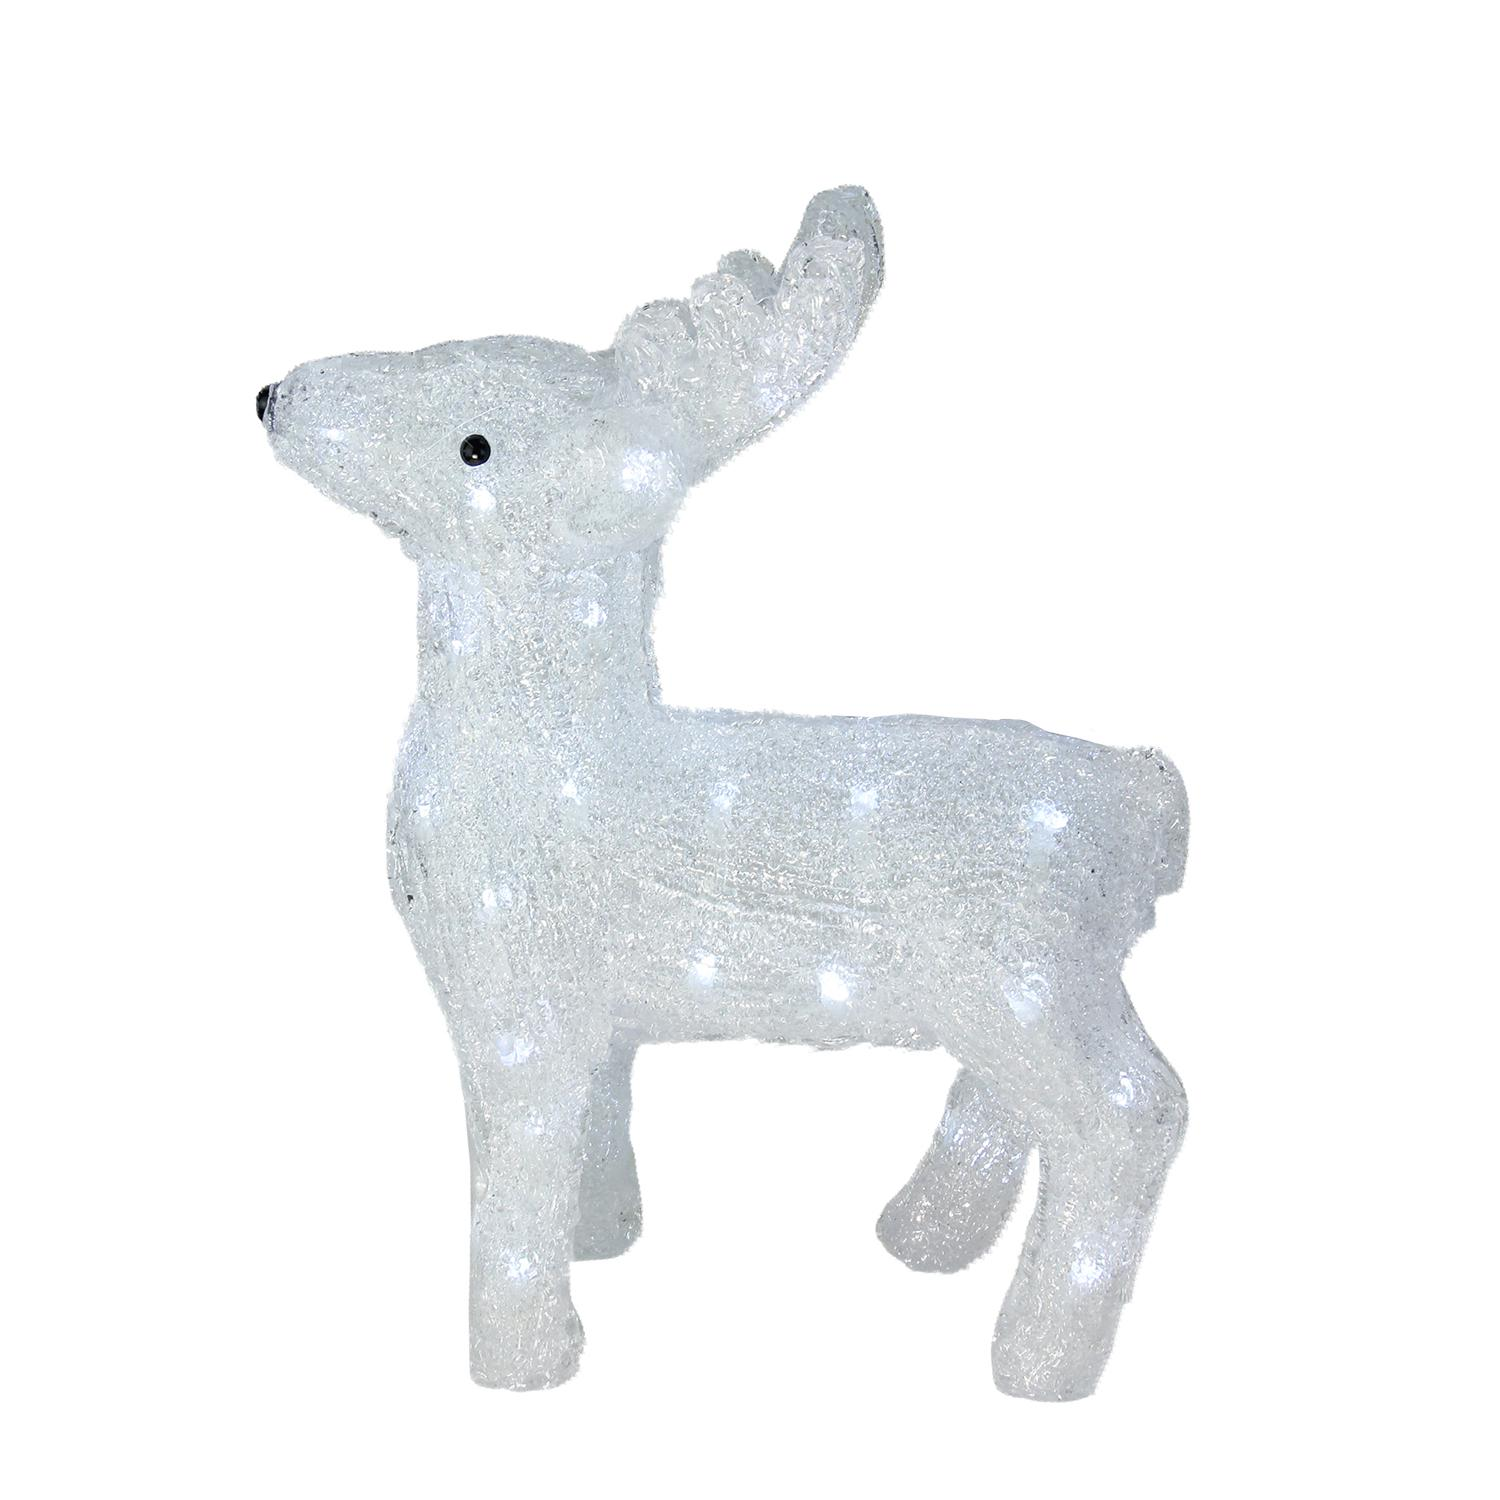 "15"" Lighted Commercial Grade Acrylic Baby Reindeer Christmas Display Decoration - image 2 of 2"